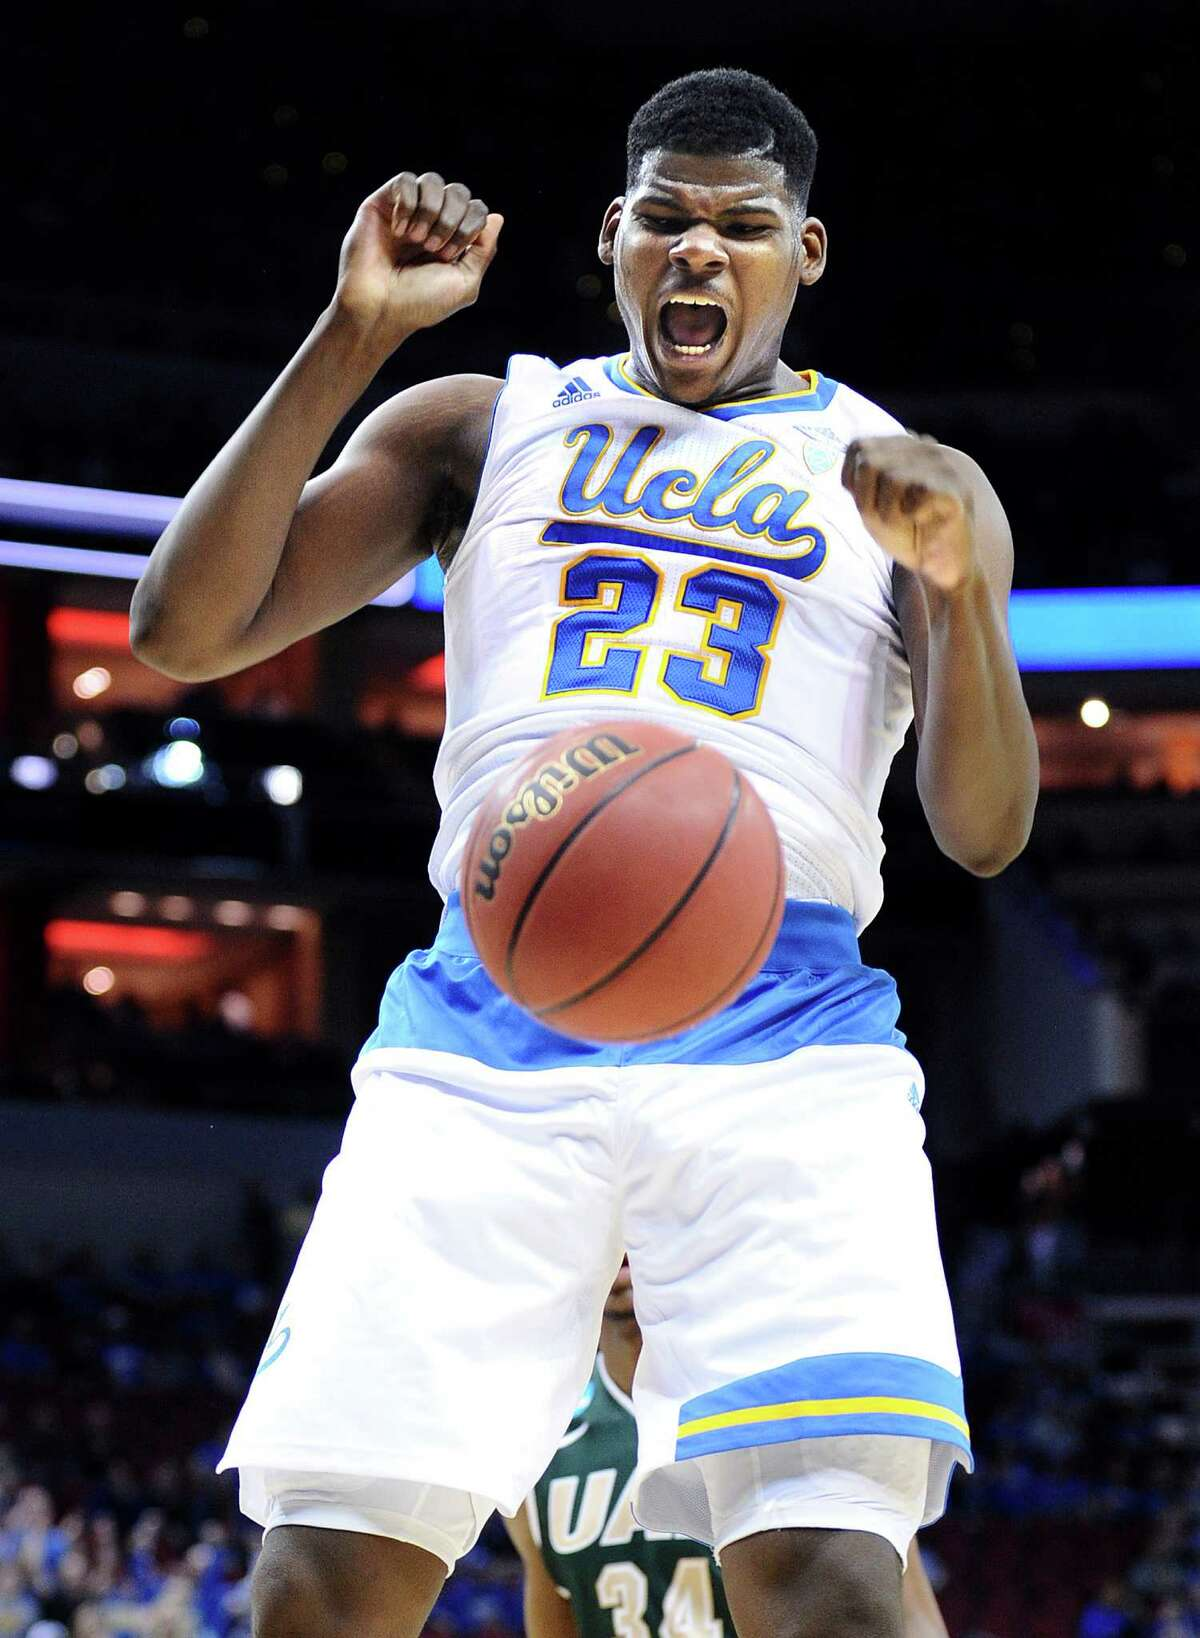 16. UCLA Mascot: Bruins Location: Los Angeles Conference: Pac-12 Region & seed: South, No. 11 Sweet 16s: 33 Elite 8s: 22 Final Fours: 18 National championships: 11 Notable alumni: Ben Stiller, Kareem Abdul-Jabbar, Jim Morrison, Jackie Robinson, Troy Aikman, Arthur Ashe. Championship odds: 100/1 Tournament recap: A former college basketball powerhouse, UCLA enters the Tournament's second week as the lowest seed at 11 after a controversial finish in its opener against SMU. The Bruins made sure there were no doubts in their second game, overpowering UAB for the right to play at NRG Stadium, where they'll try to advance to the Elite 8 for the first time since making three straight appearances from 2006-08. UCLA brings to town five players who average double-digits scoring, including coach Steve Alford's son, Bryce, the Pac-12's top freshman a season ago.